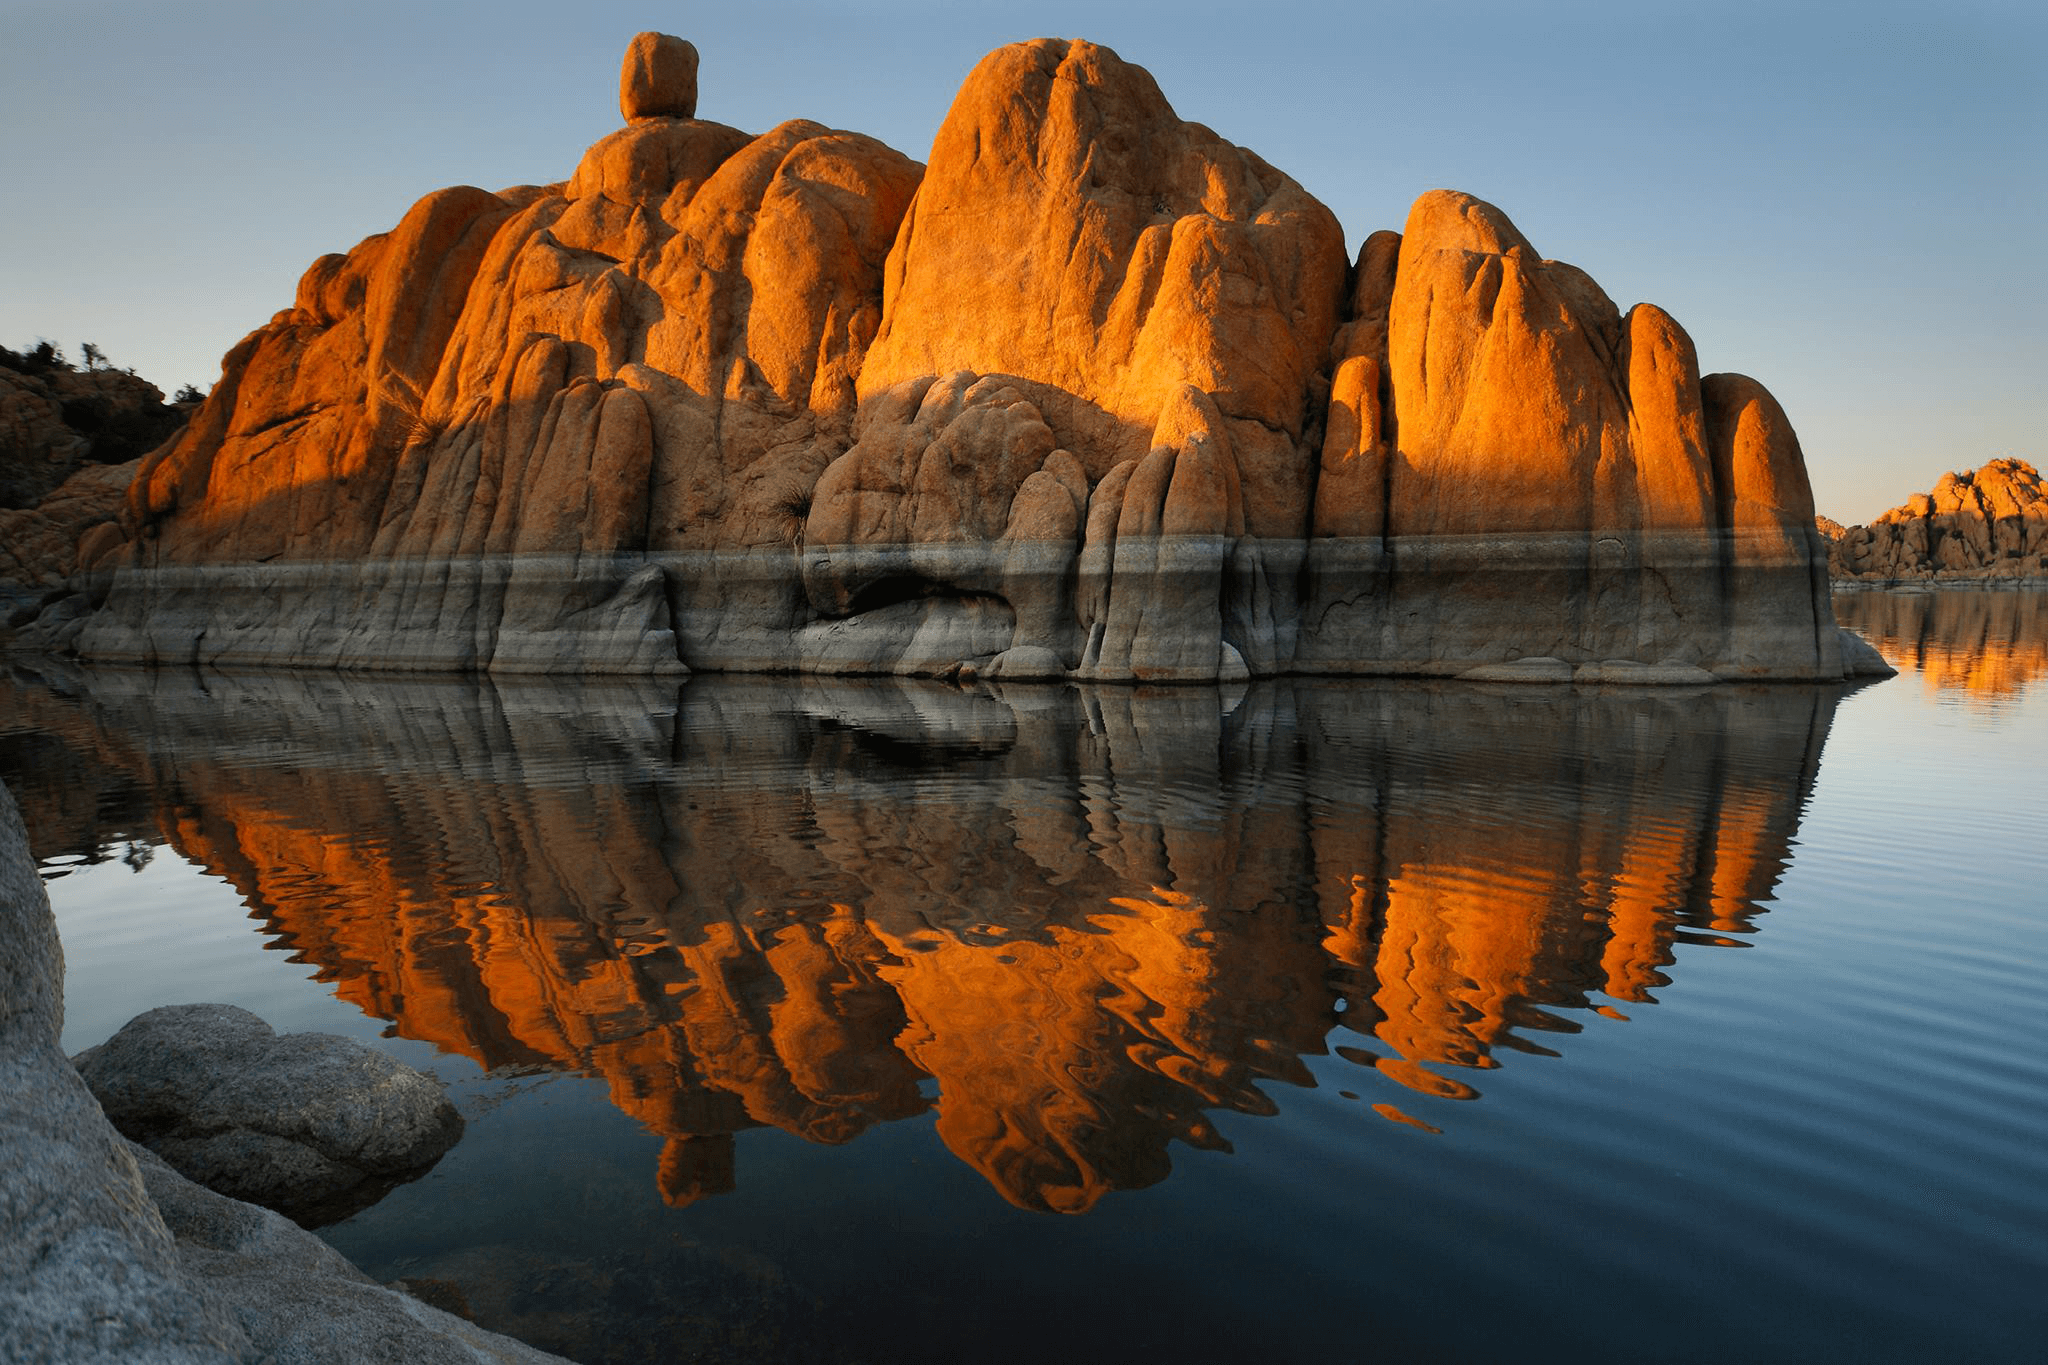 Watson Lake is beautiful with its exquisite rock formations that protrude through the water.